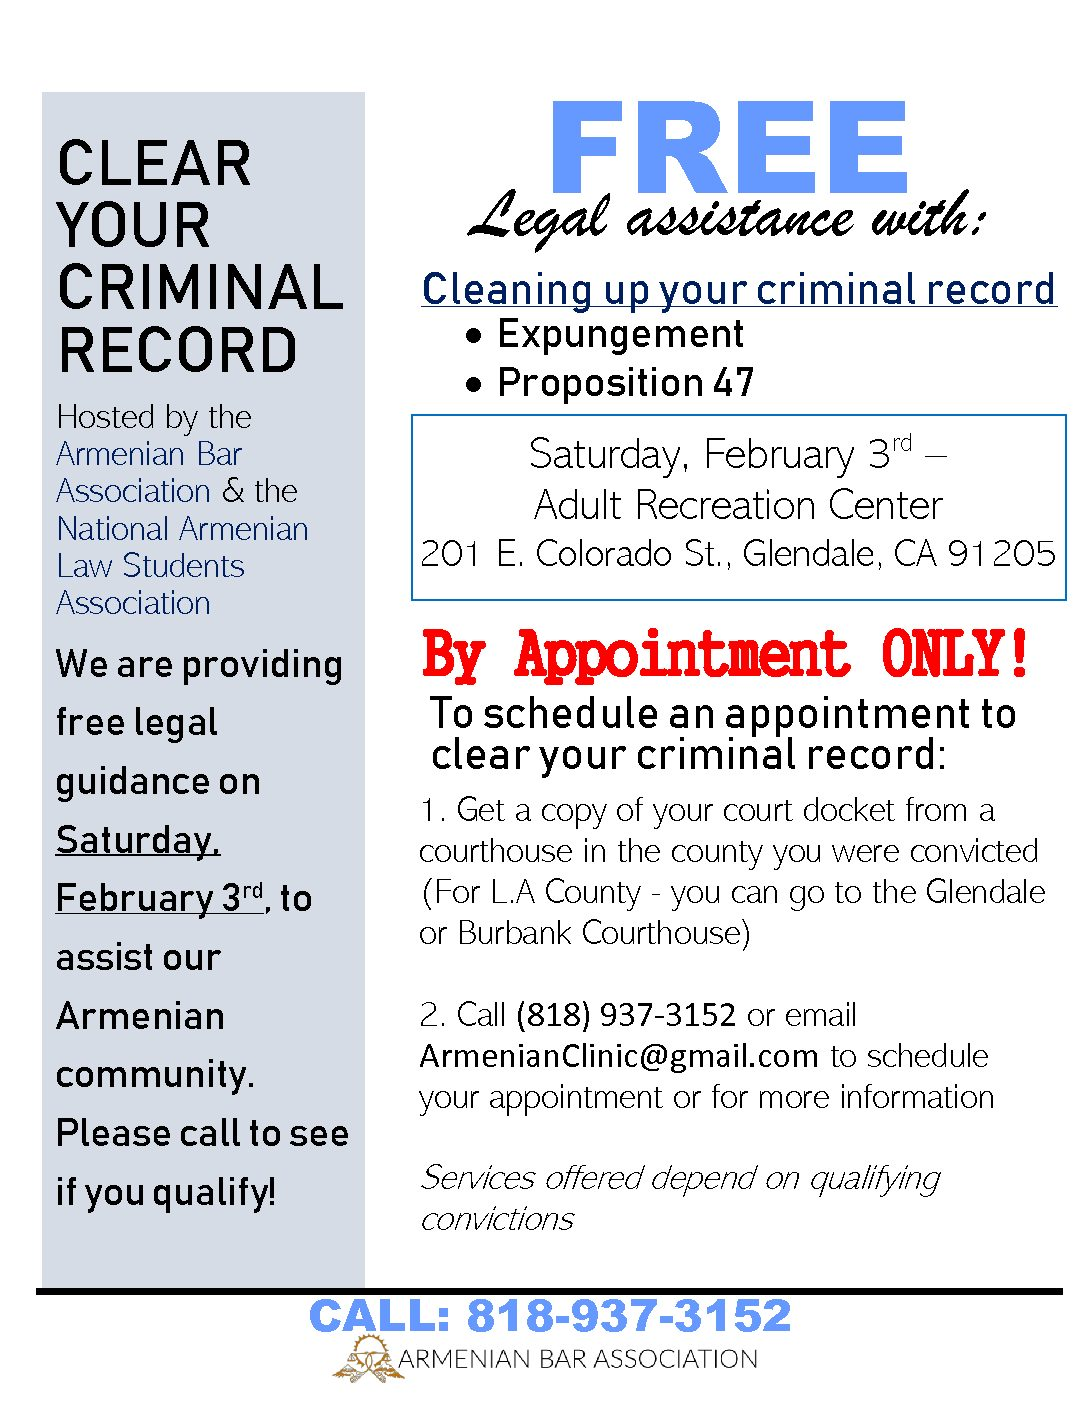 New Beginnings: A Guide to Clearing Criminal Records